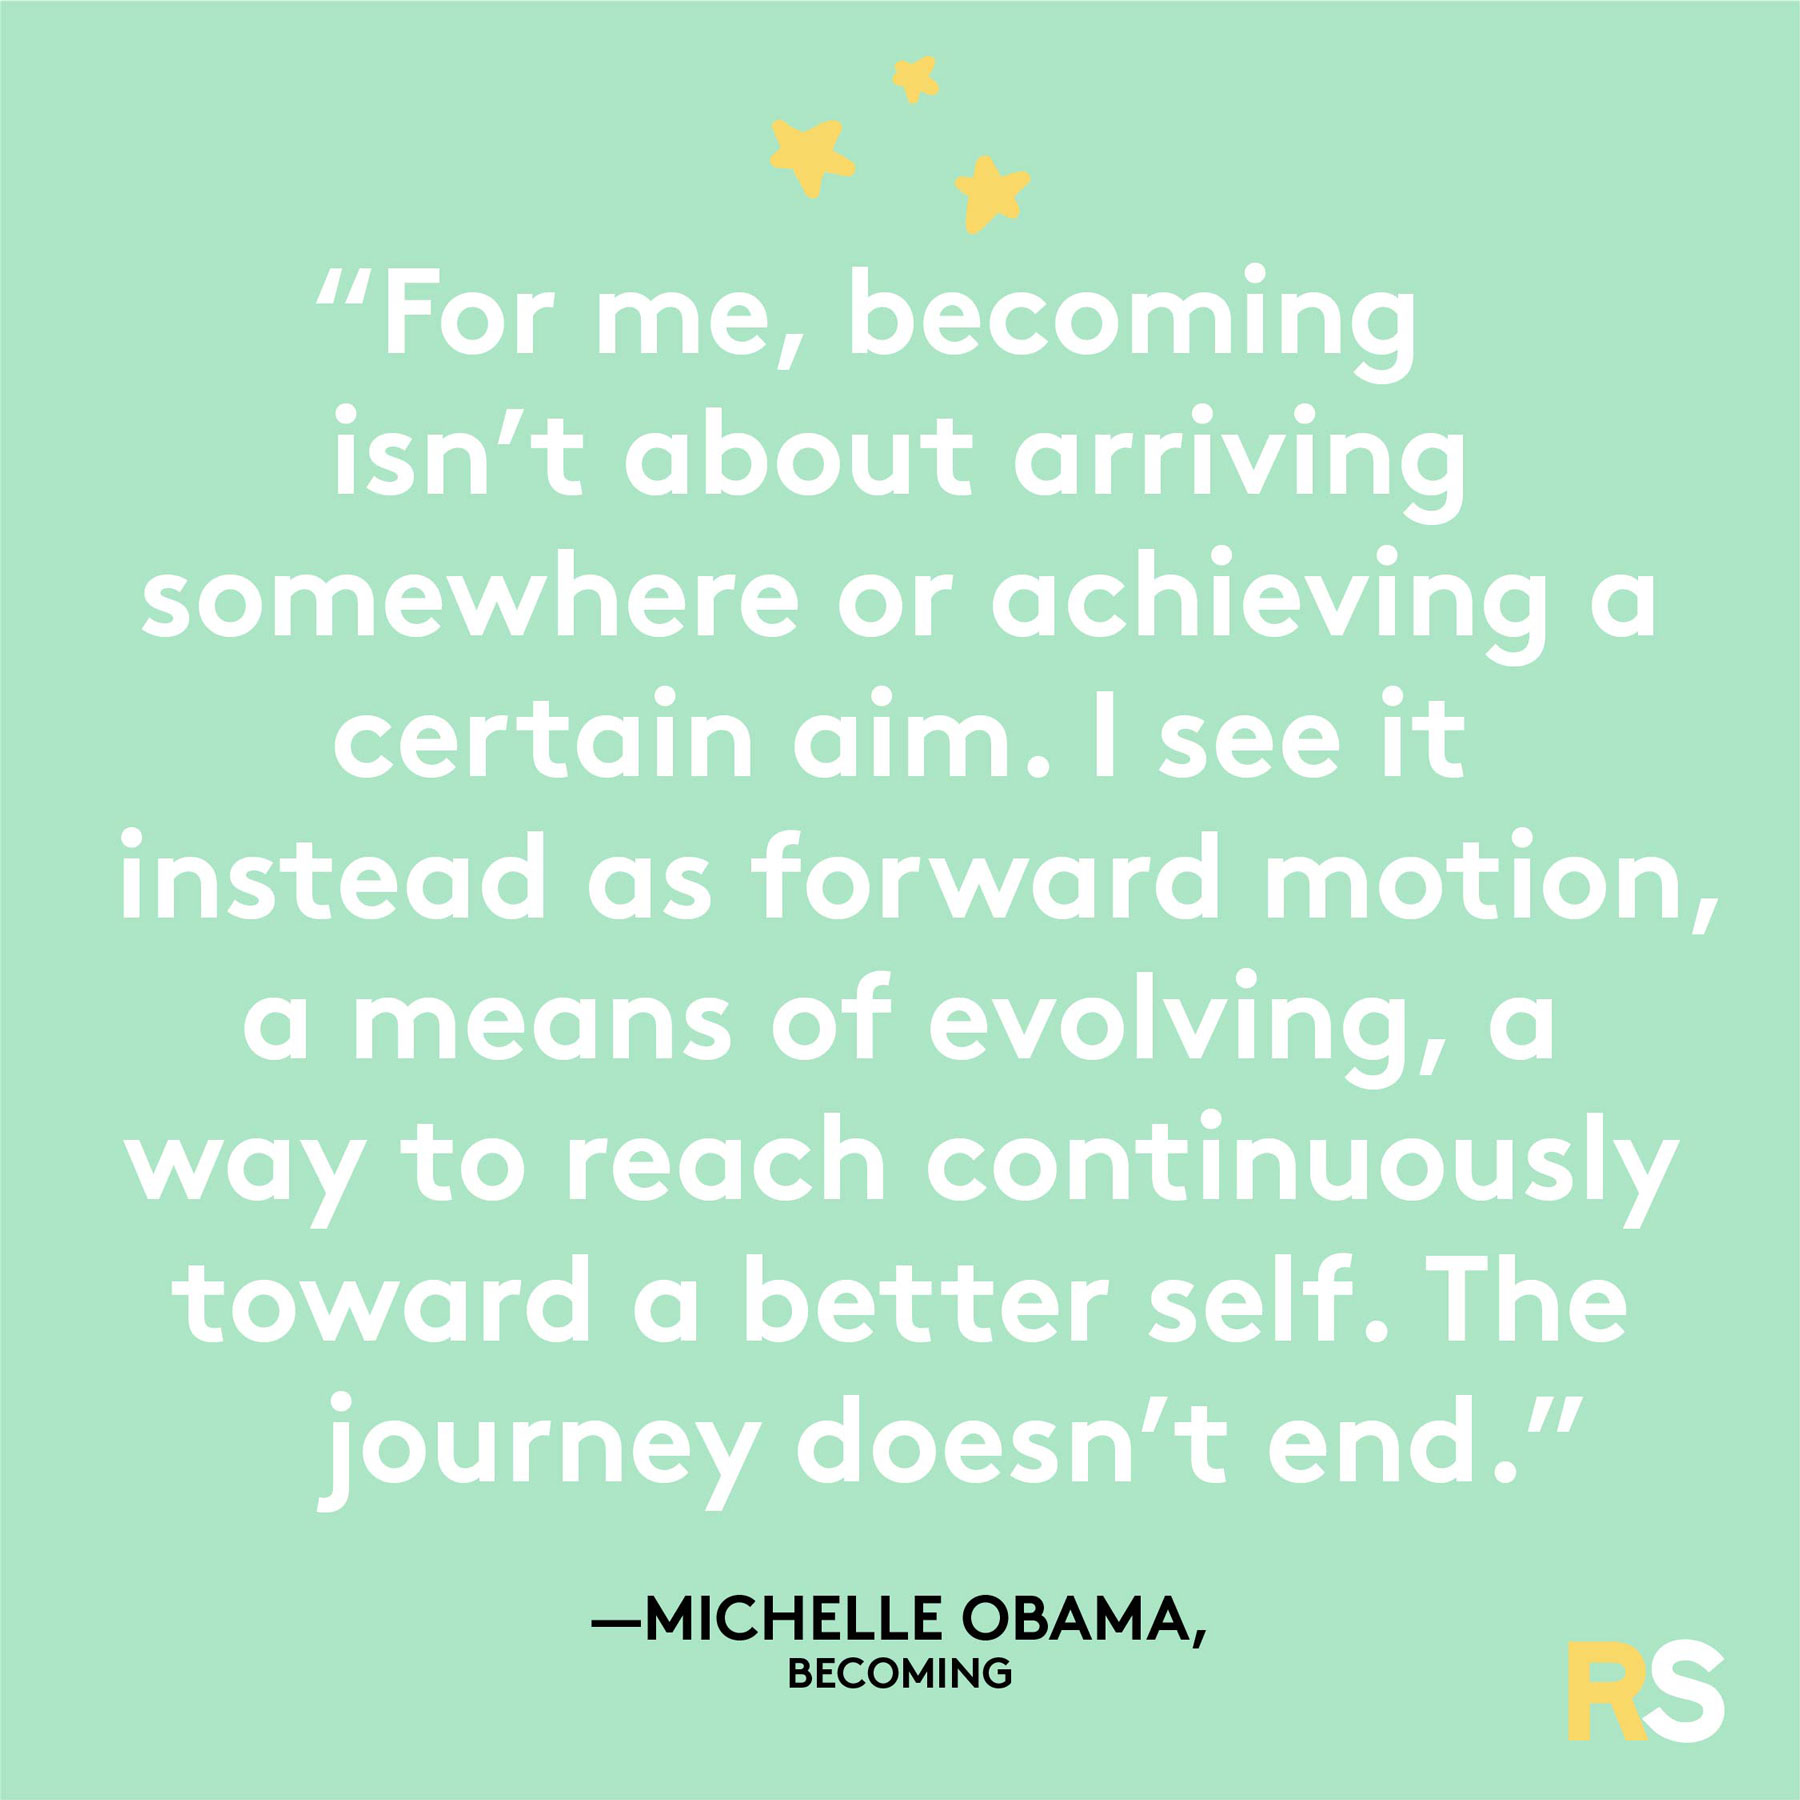 Positive motivating quotes, captions, messages – Michelle Obama, Becoming quote